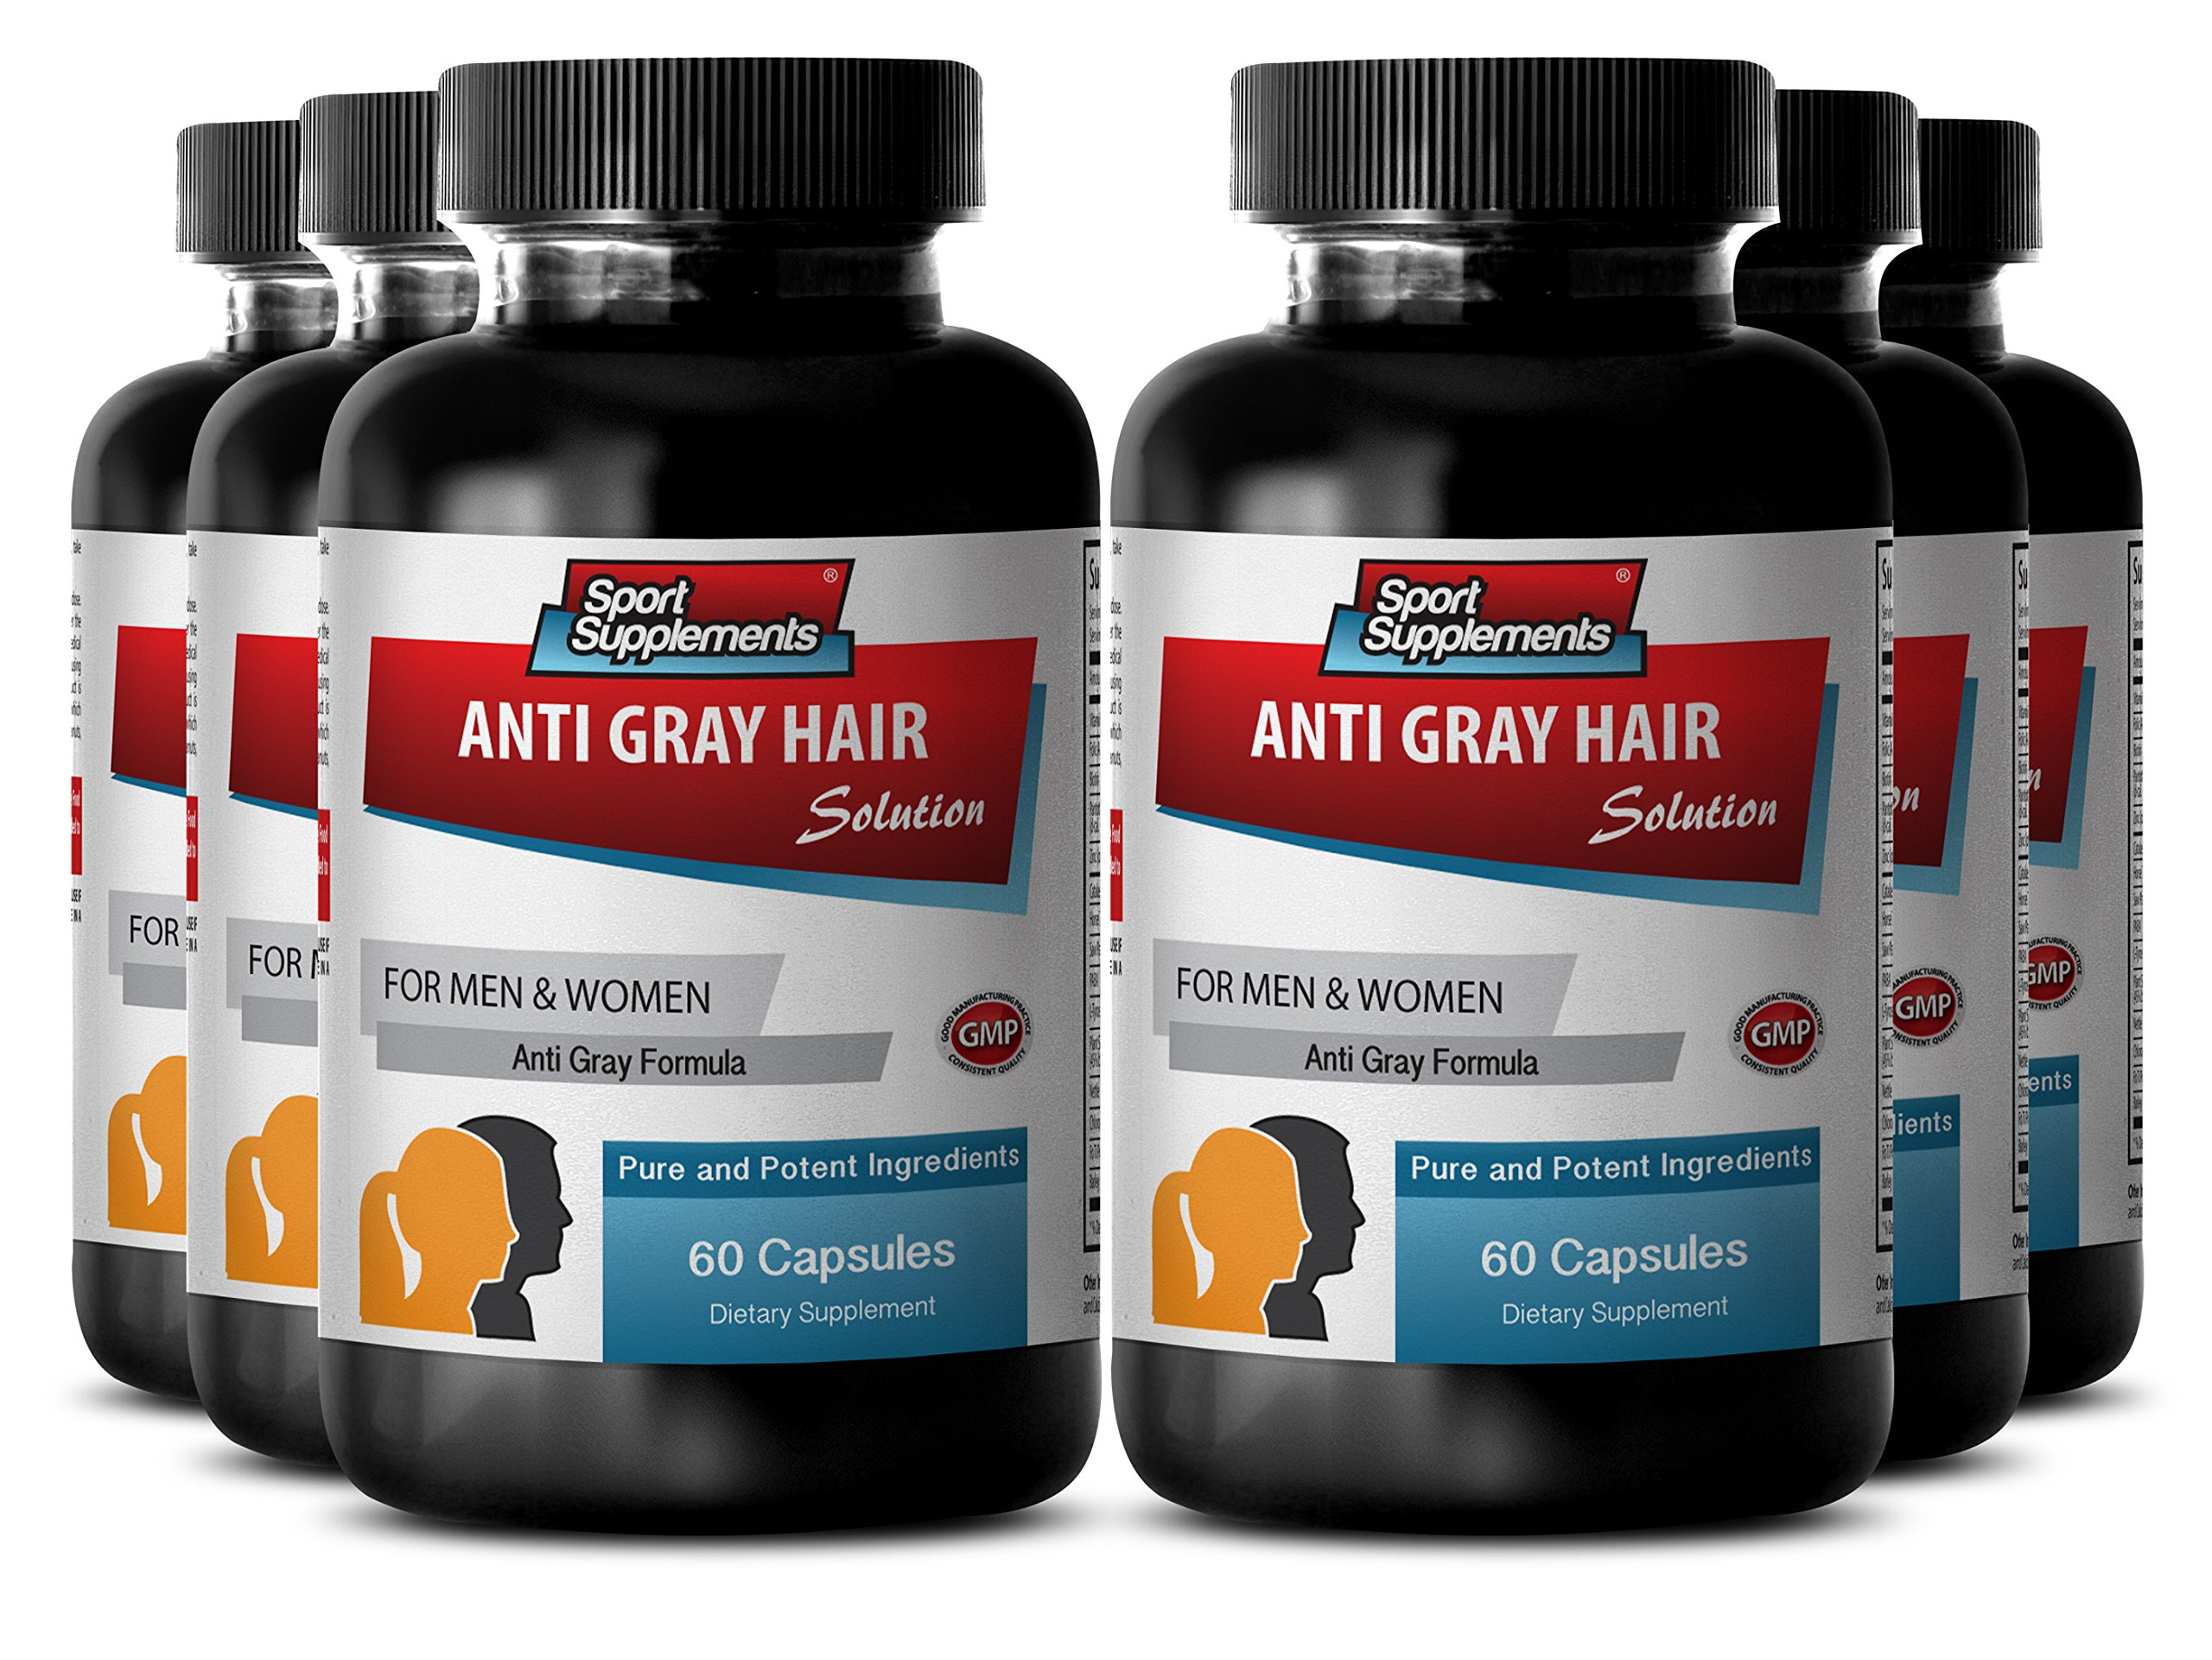 Catalase for grey hair - Anti Gray Hair - Gray hair anti, Biotin powder (6 Bottles - 360 Capsules) by Sport Supplement